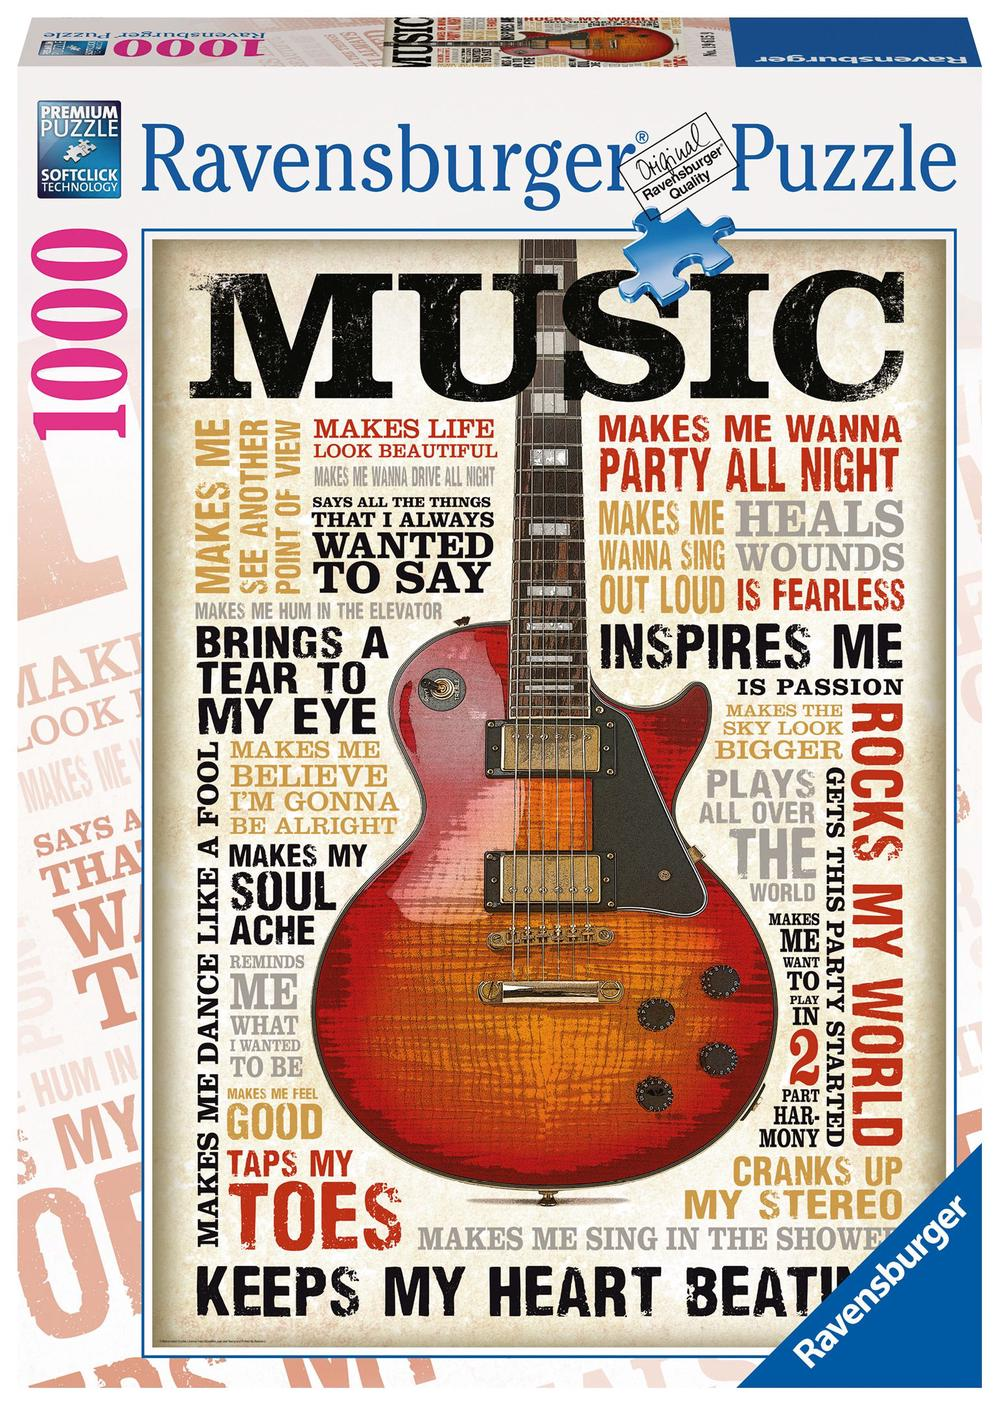 Ravensburger 1000 piece Puzzle (Passion for Music) | Buy online at